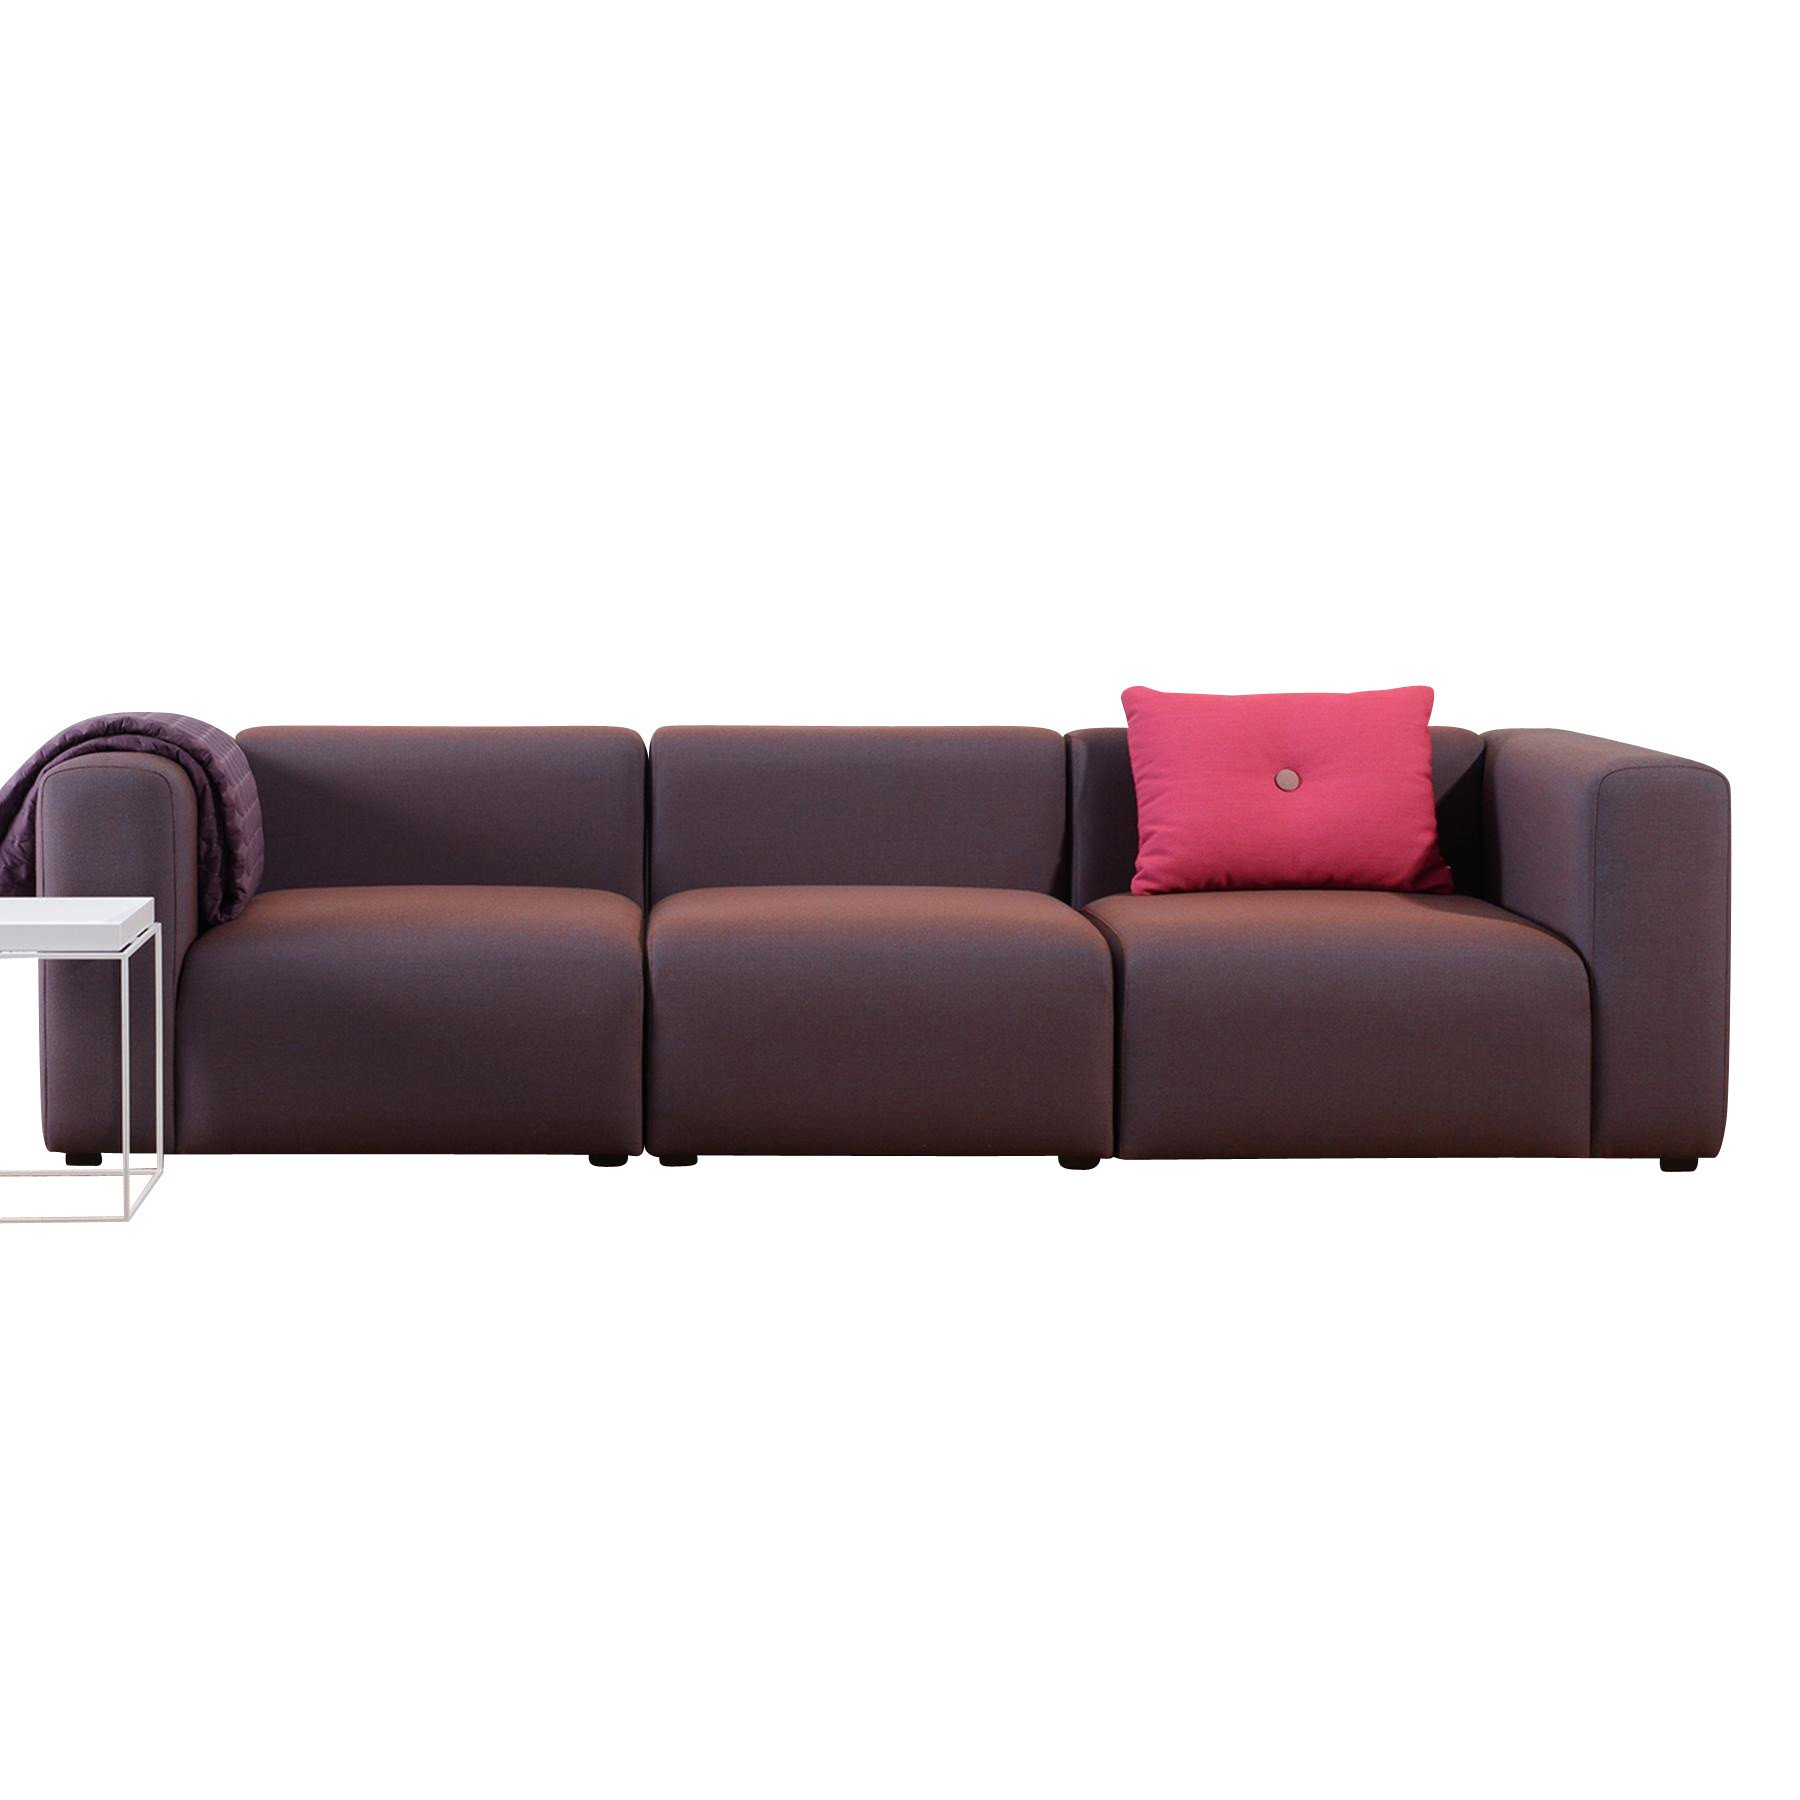 hay mags sofa fabrics leather outlet manchester 3 seater ambientedirect